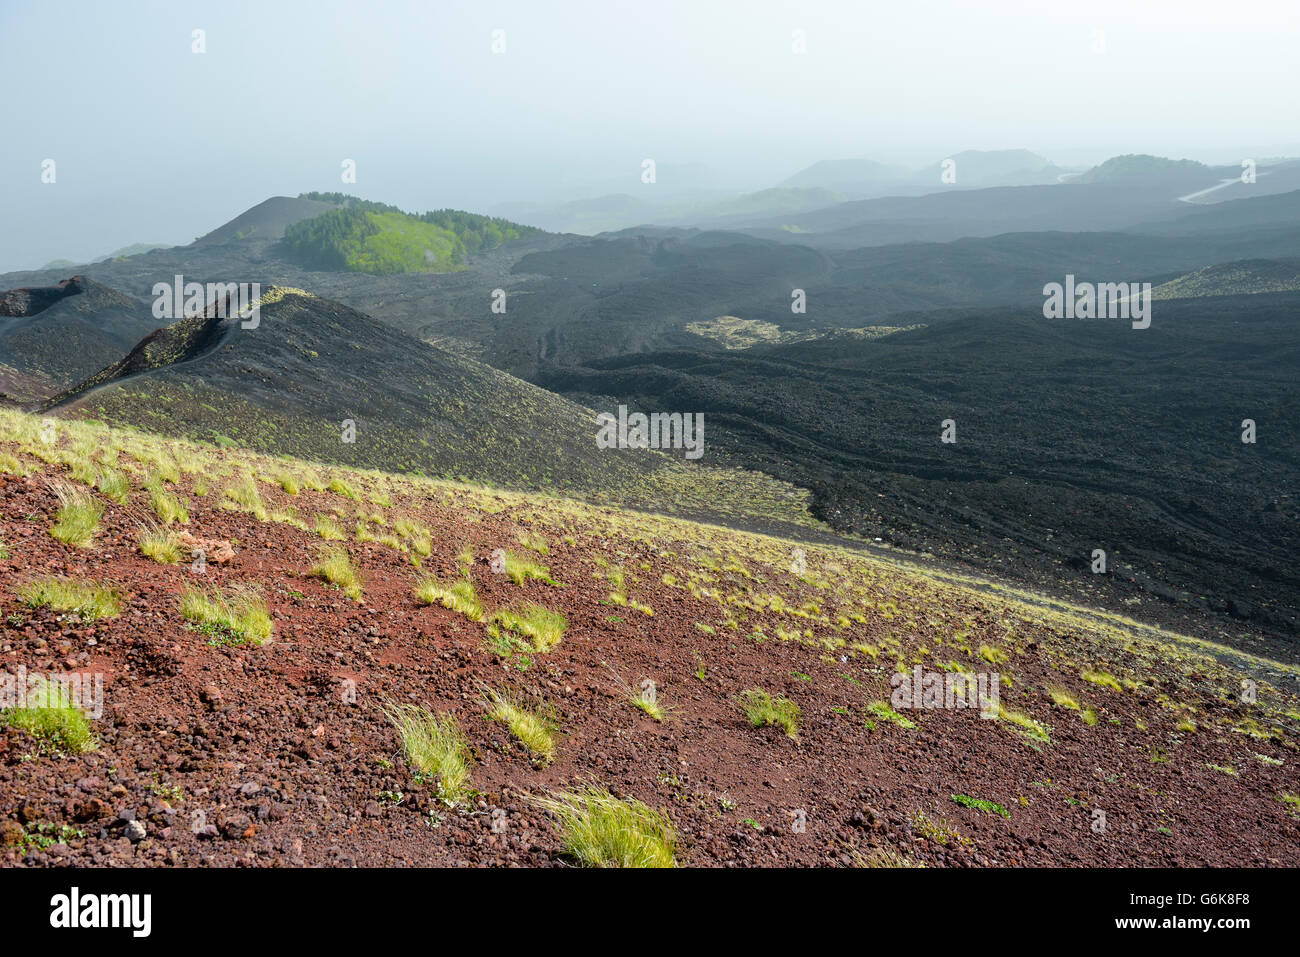 Italy, Sicily, Mount Etna, volcanic crater, lava fields - Stock Image